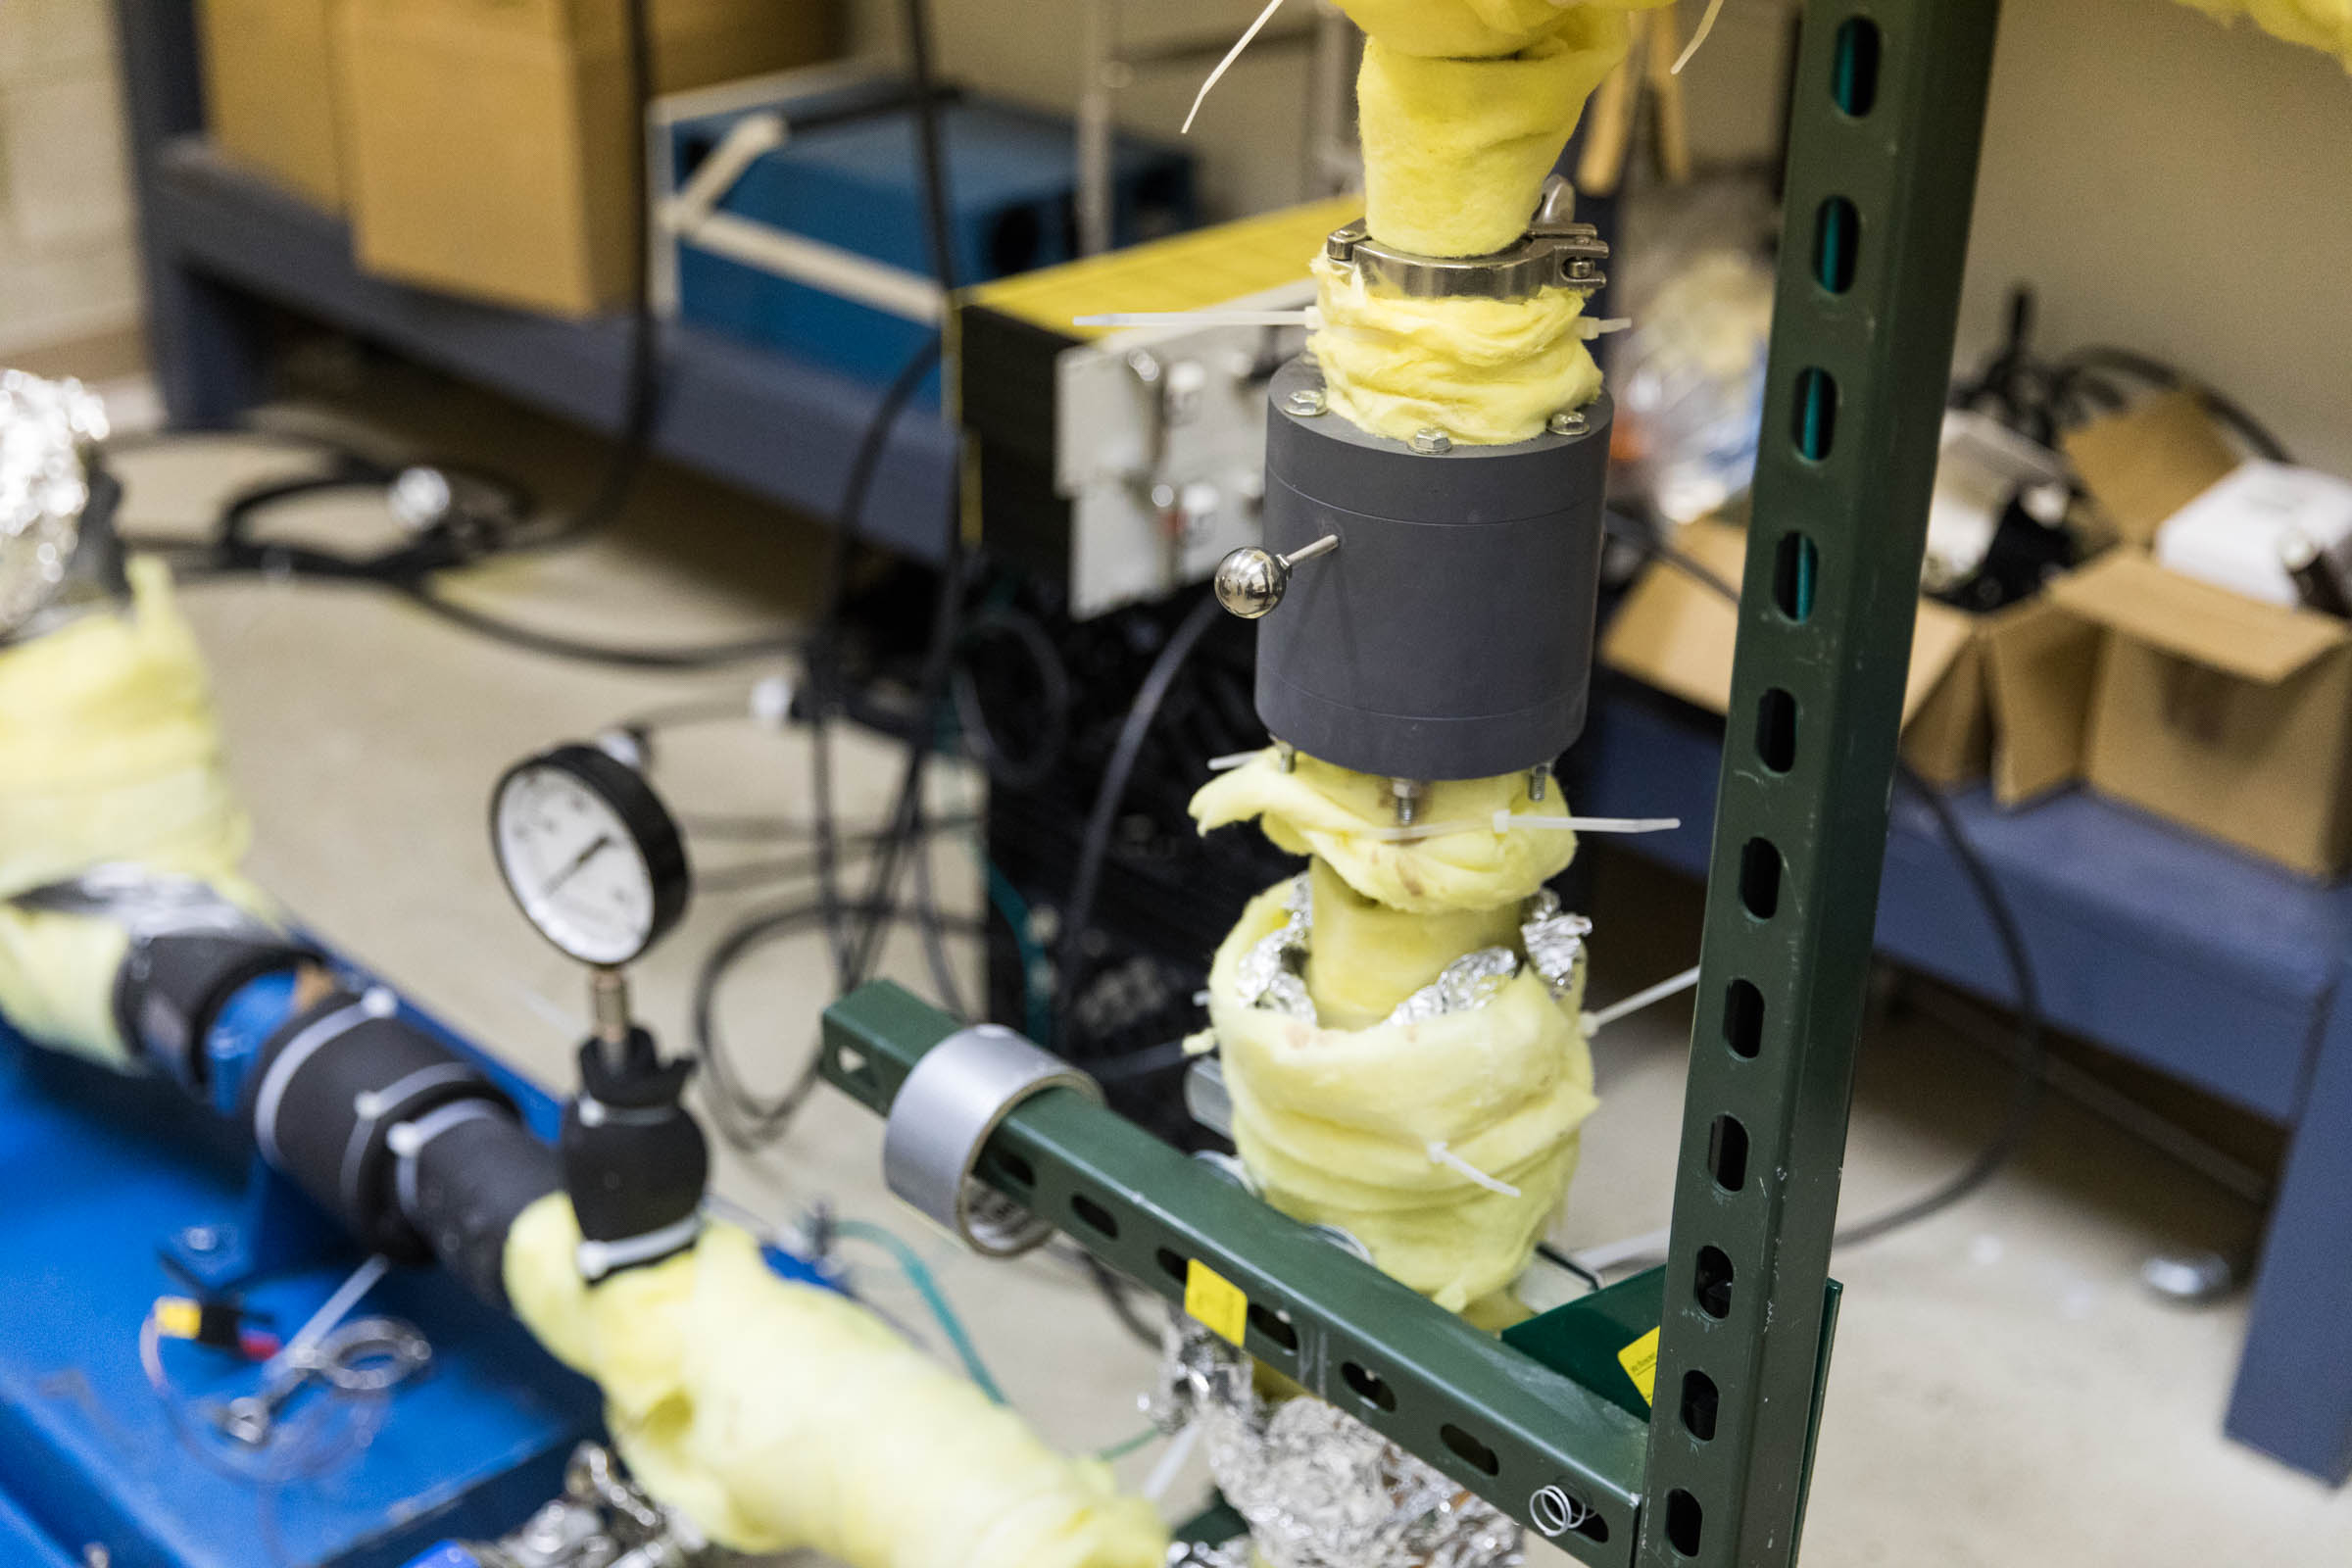 Improving the efficiency of pumping chocolate is the goal of this device resulting from a collaboration between Temple University and AmpTech Commercialization Center.